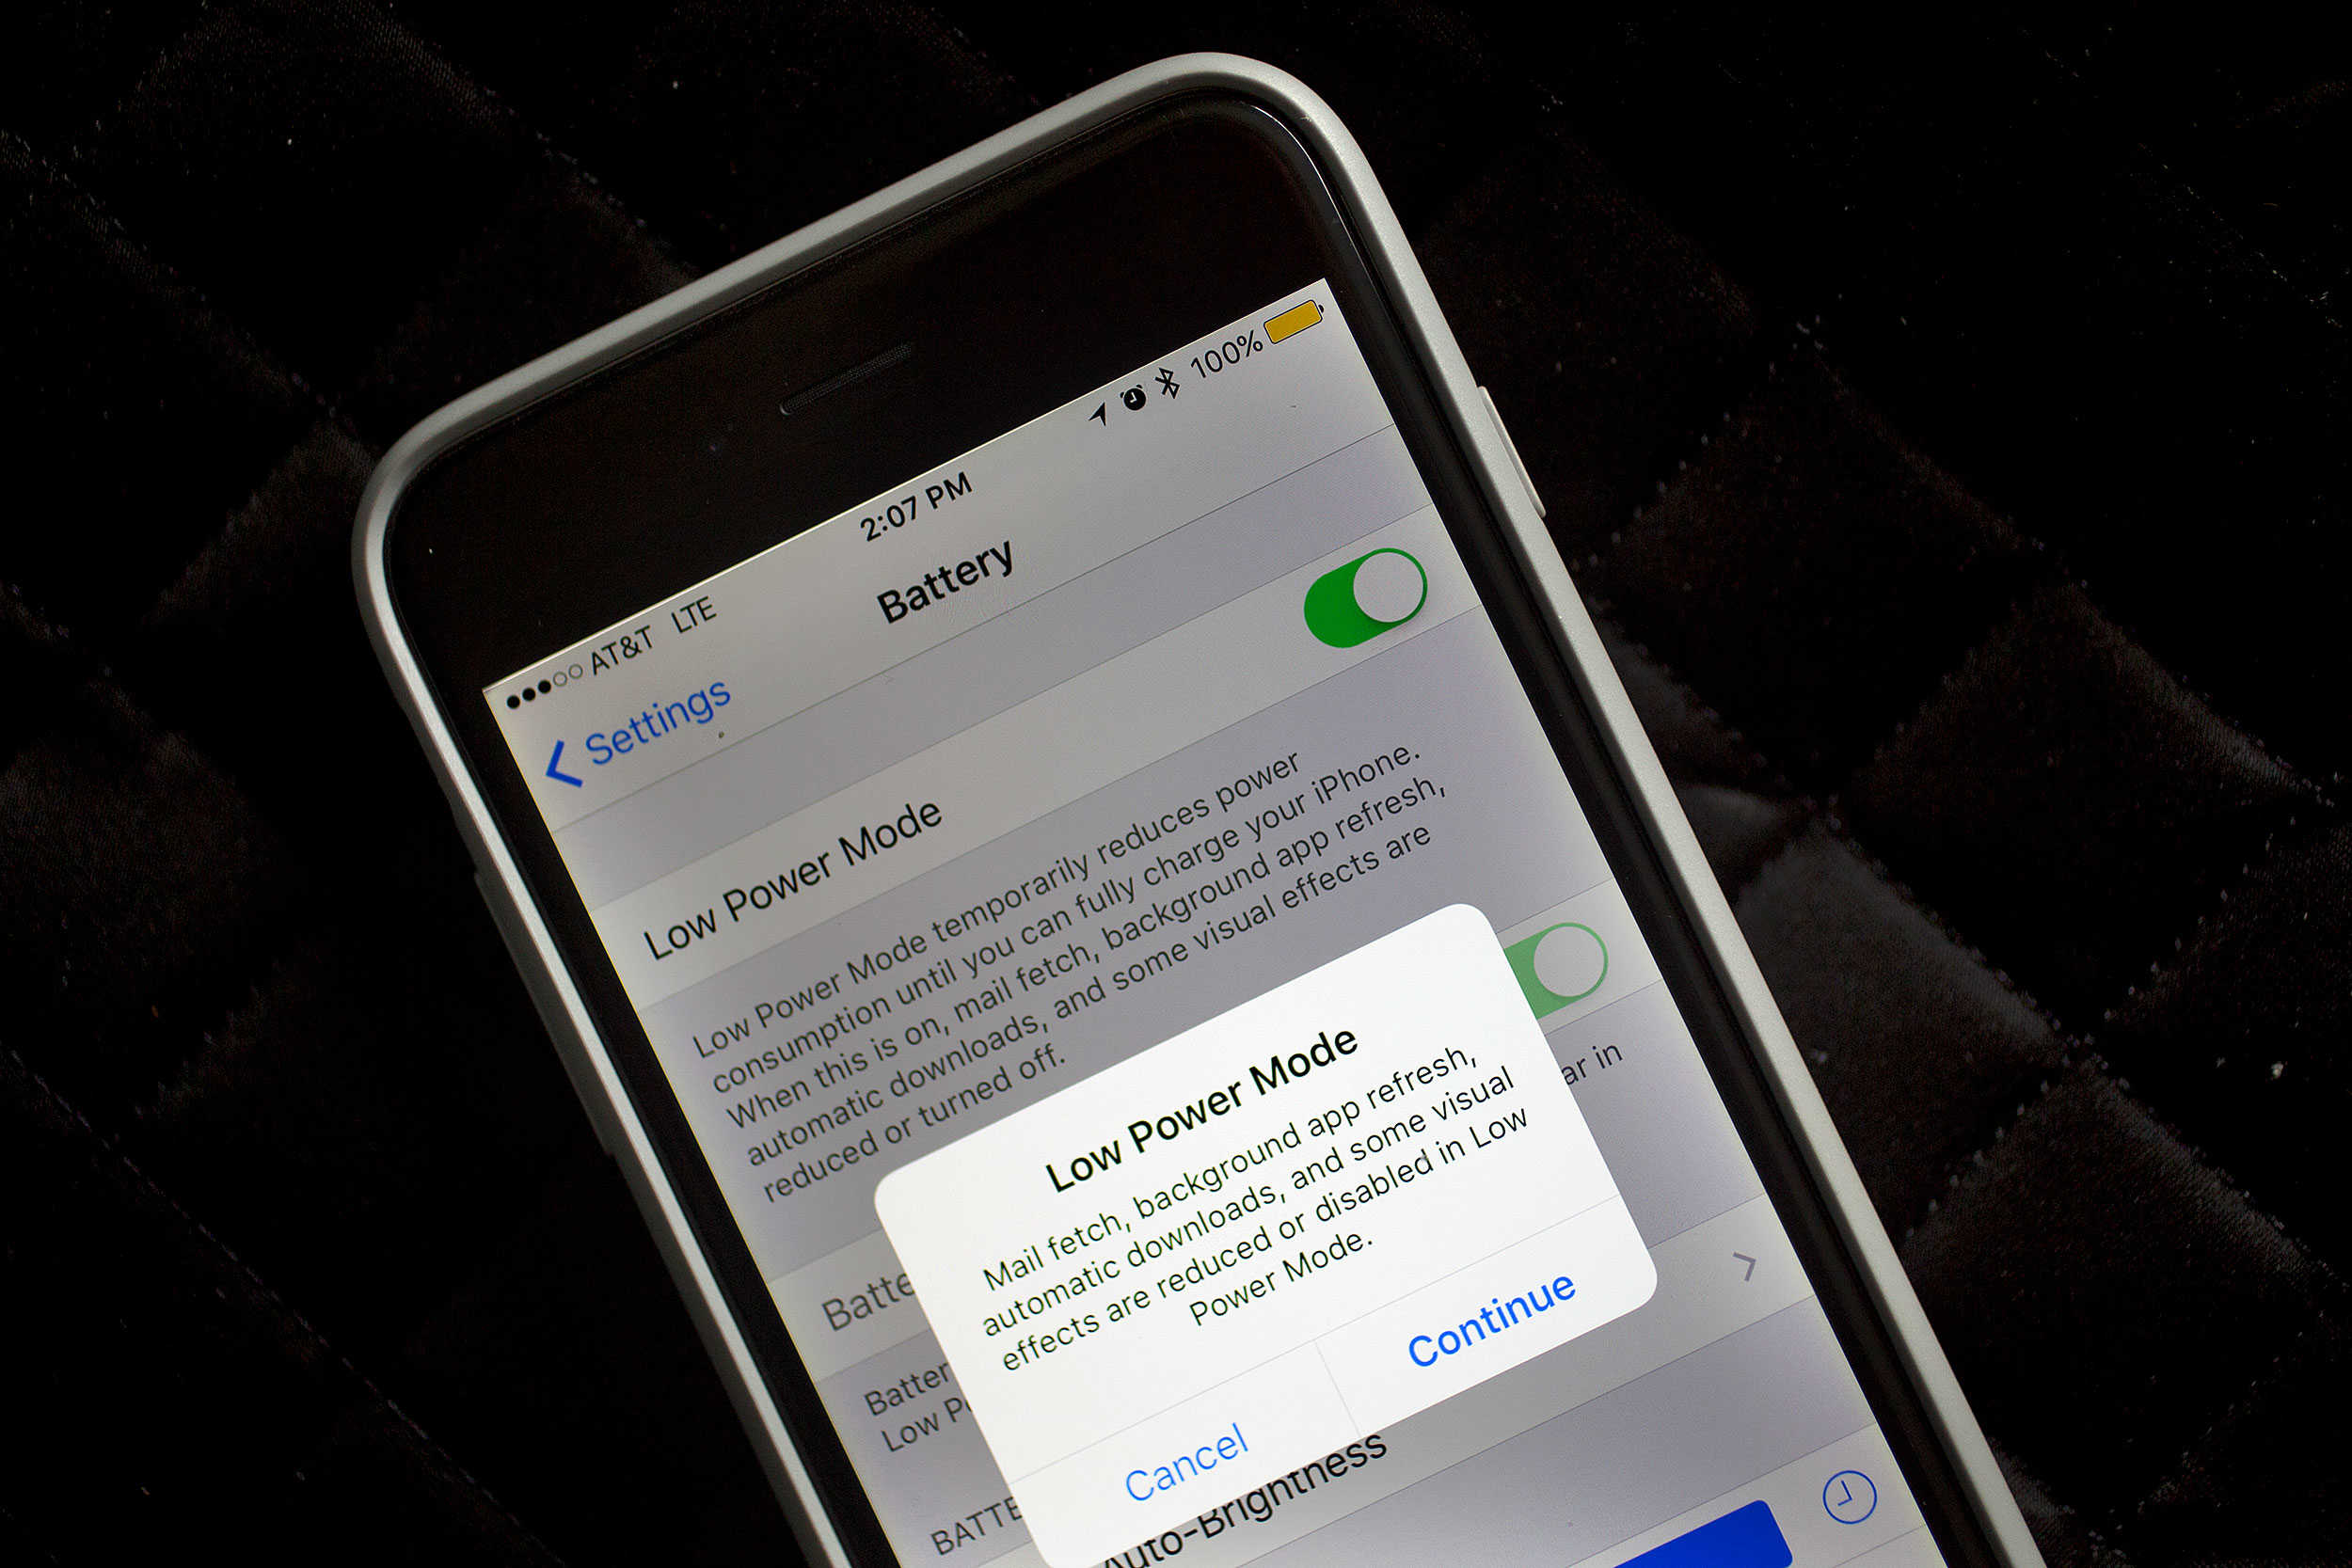 The new Low Battery Mode in iOS 9 means your device will last even longer than before.